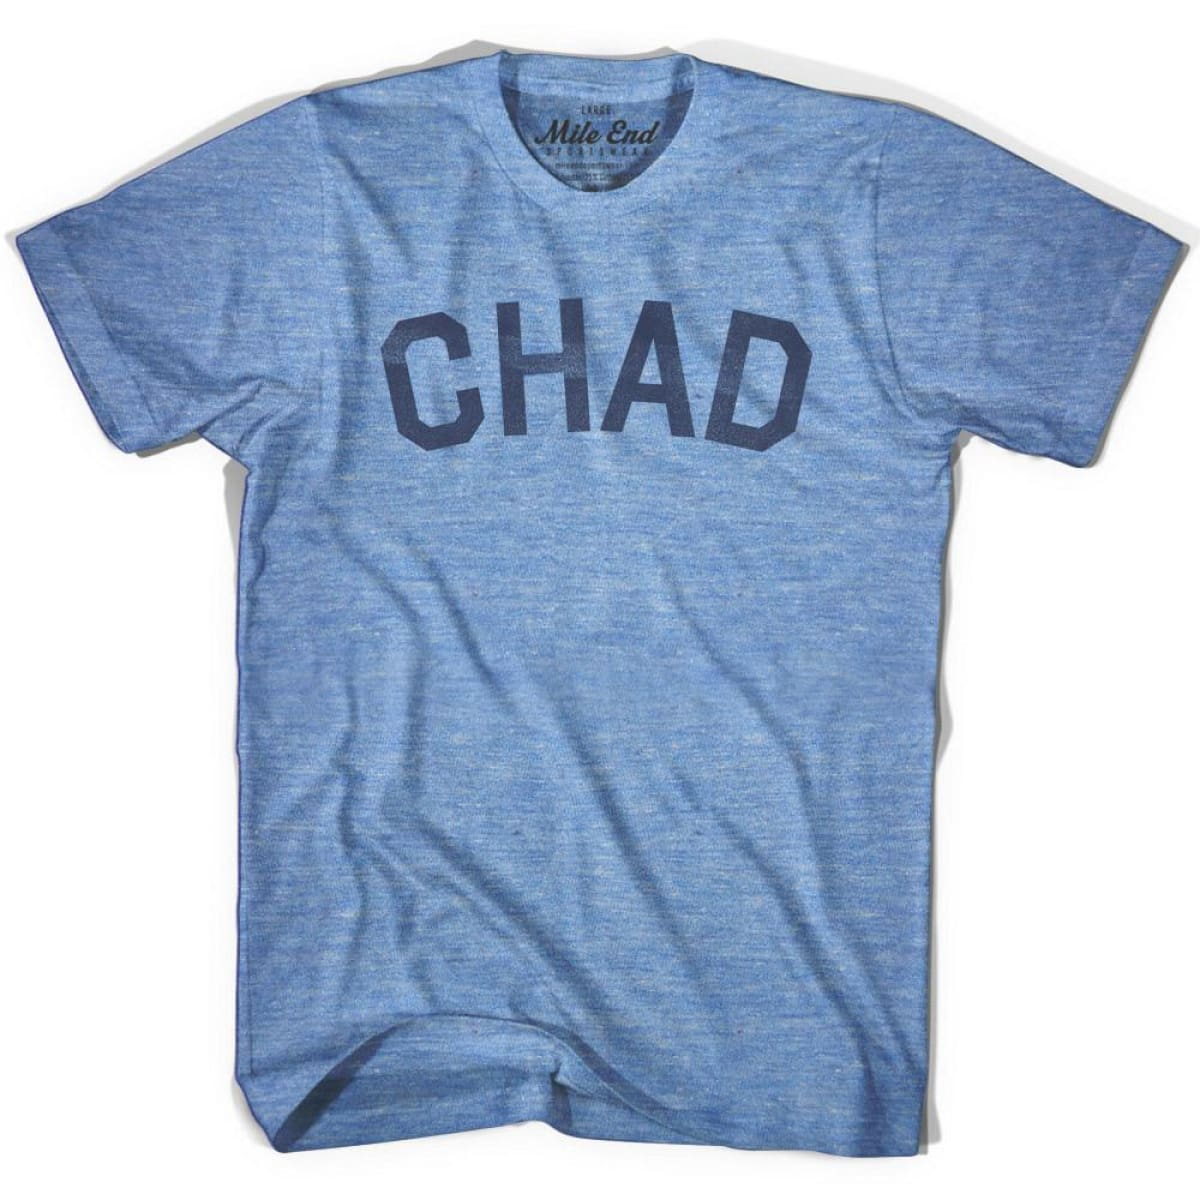 Chad City Vintage T-shirt - Athletic Blue / Adult X-Small - Mile End City